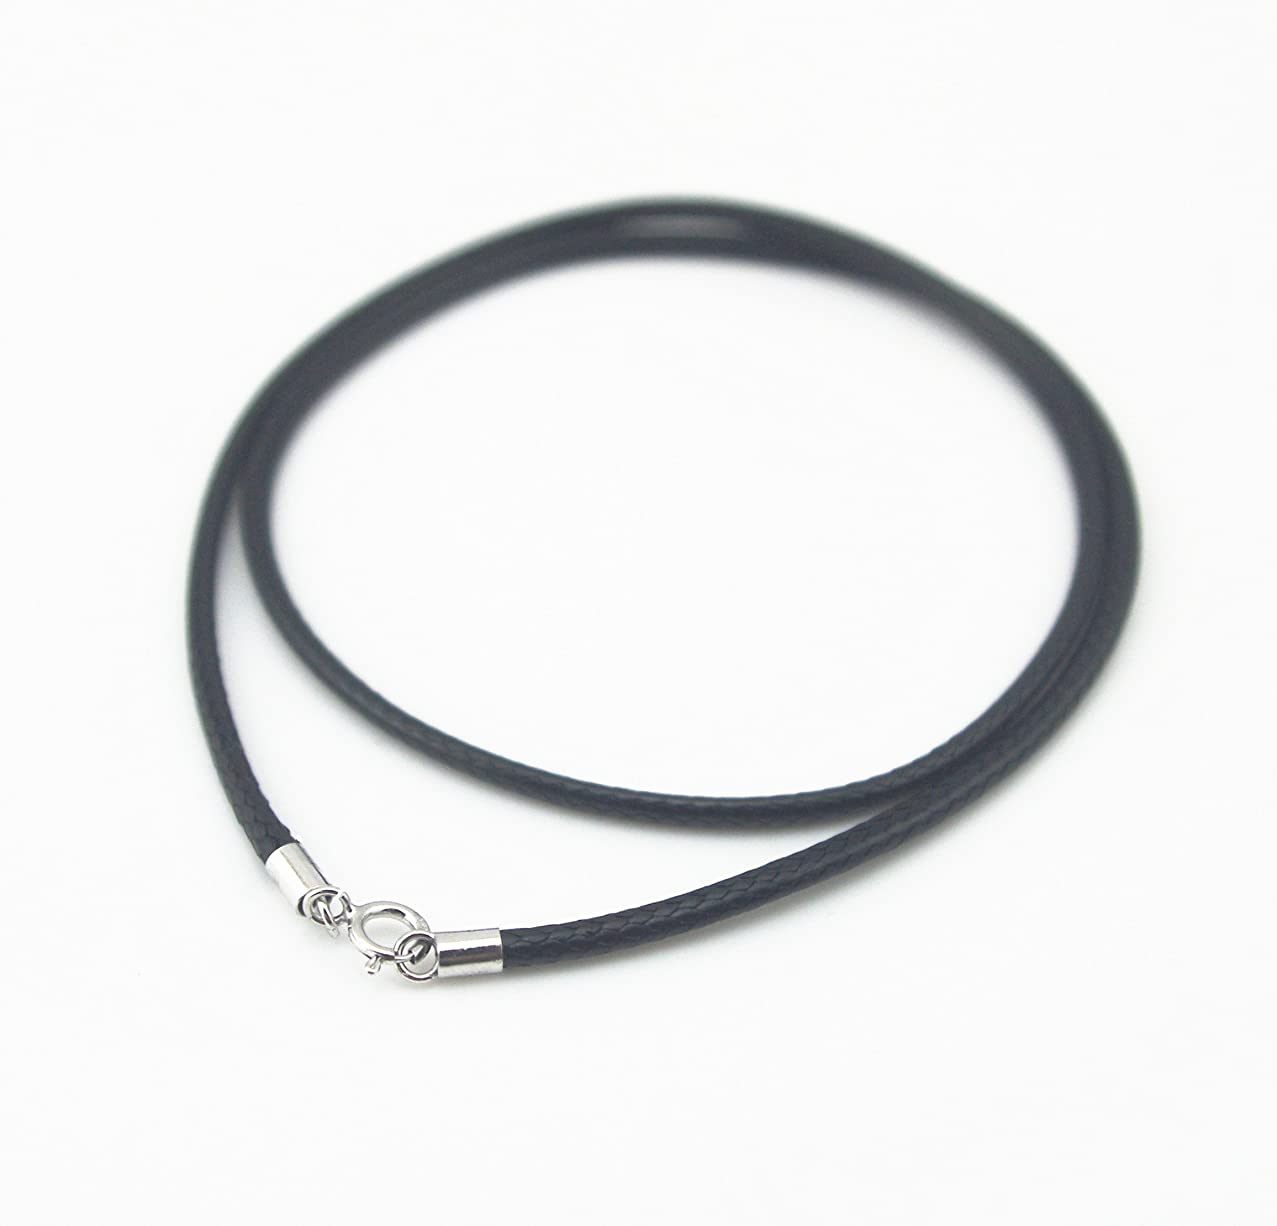 Glory Qin Black Silk Braided Rope Chain 925 Silver Plated Clasp Leather Cord Chain Necklace Rope (1.0 mm, 16 Inches)